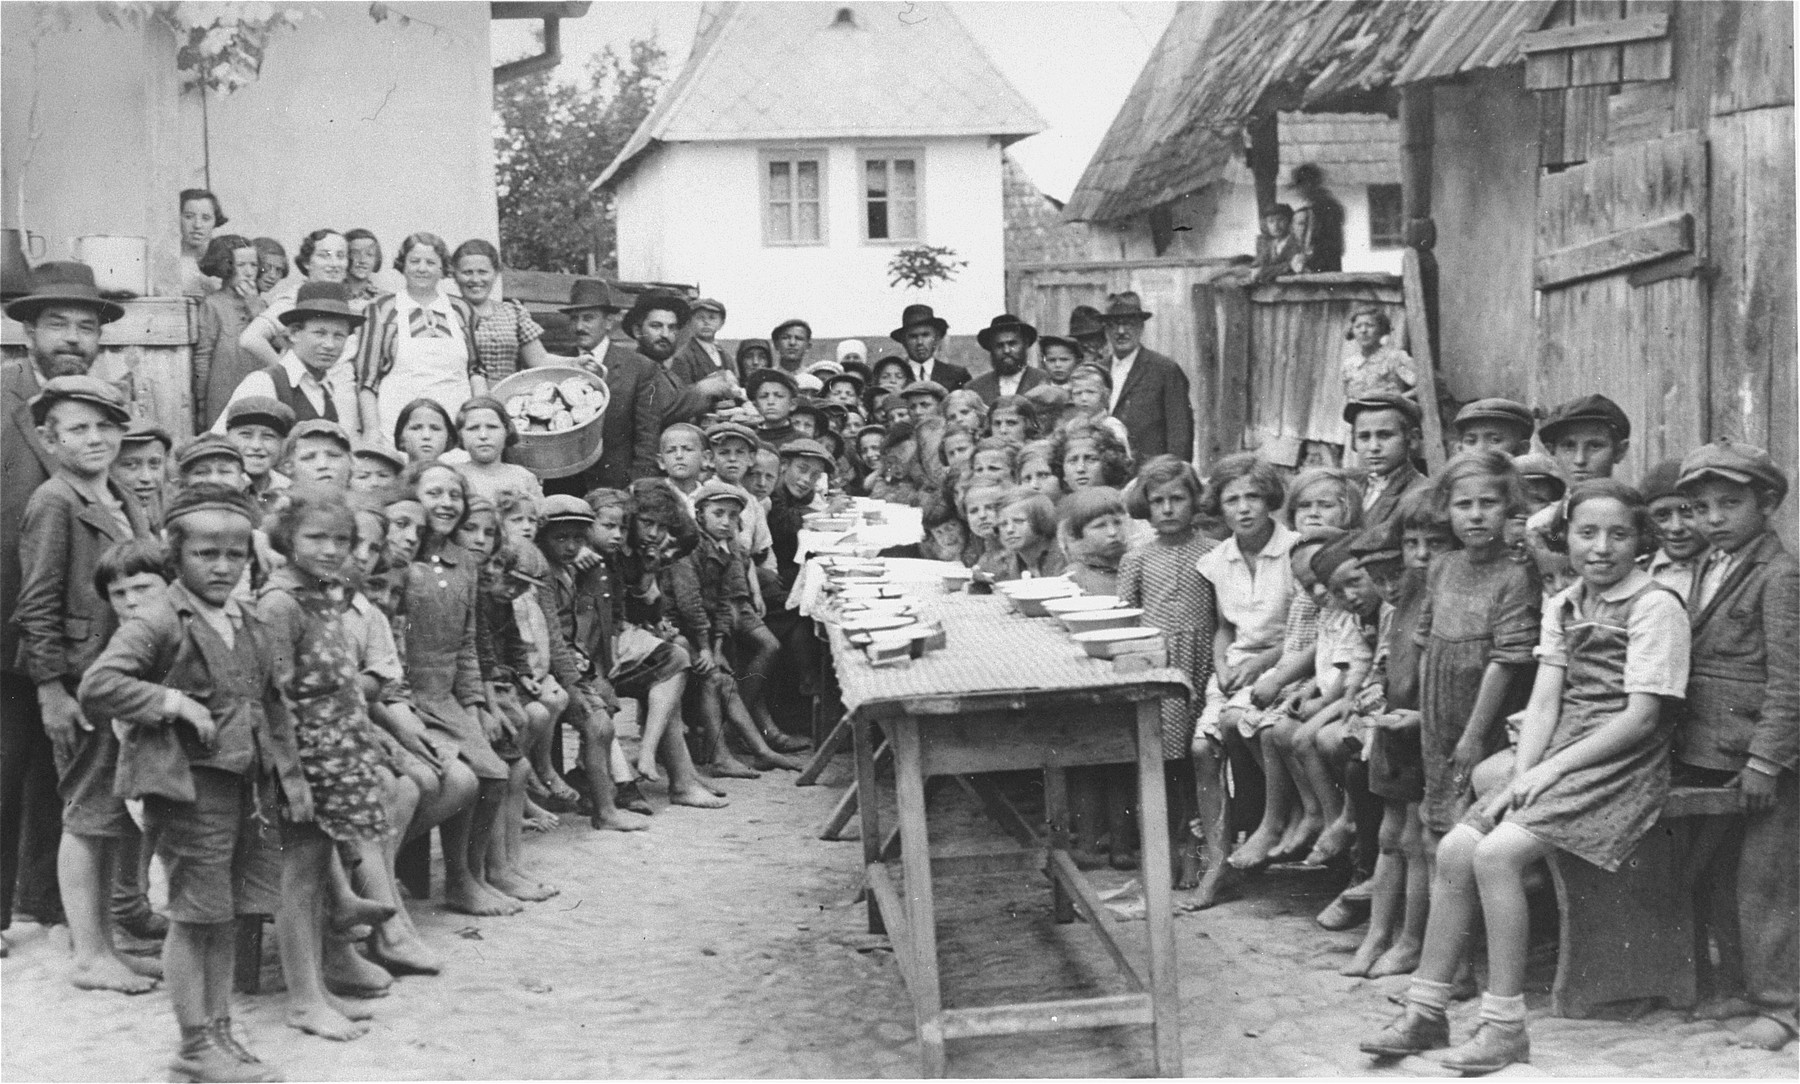 Group portrait of Jewish children at a JDC sponsored soup kitchen in Tacovo.